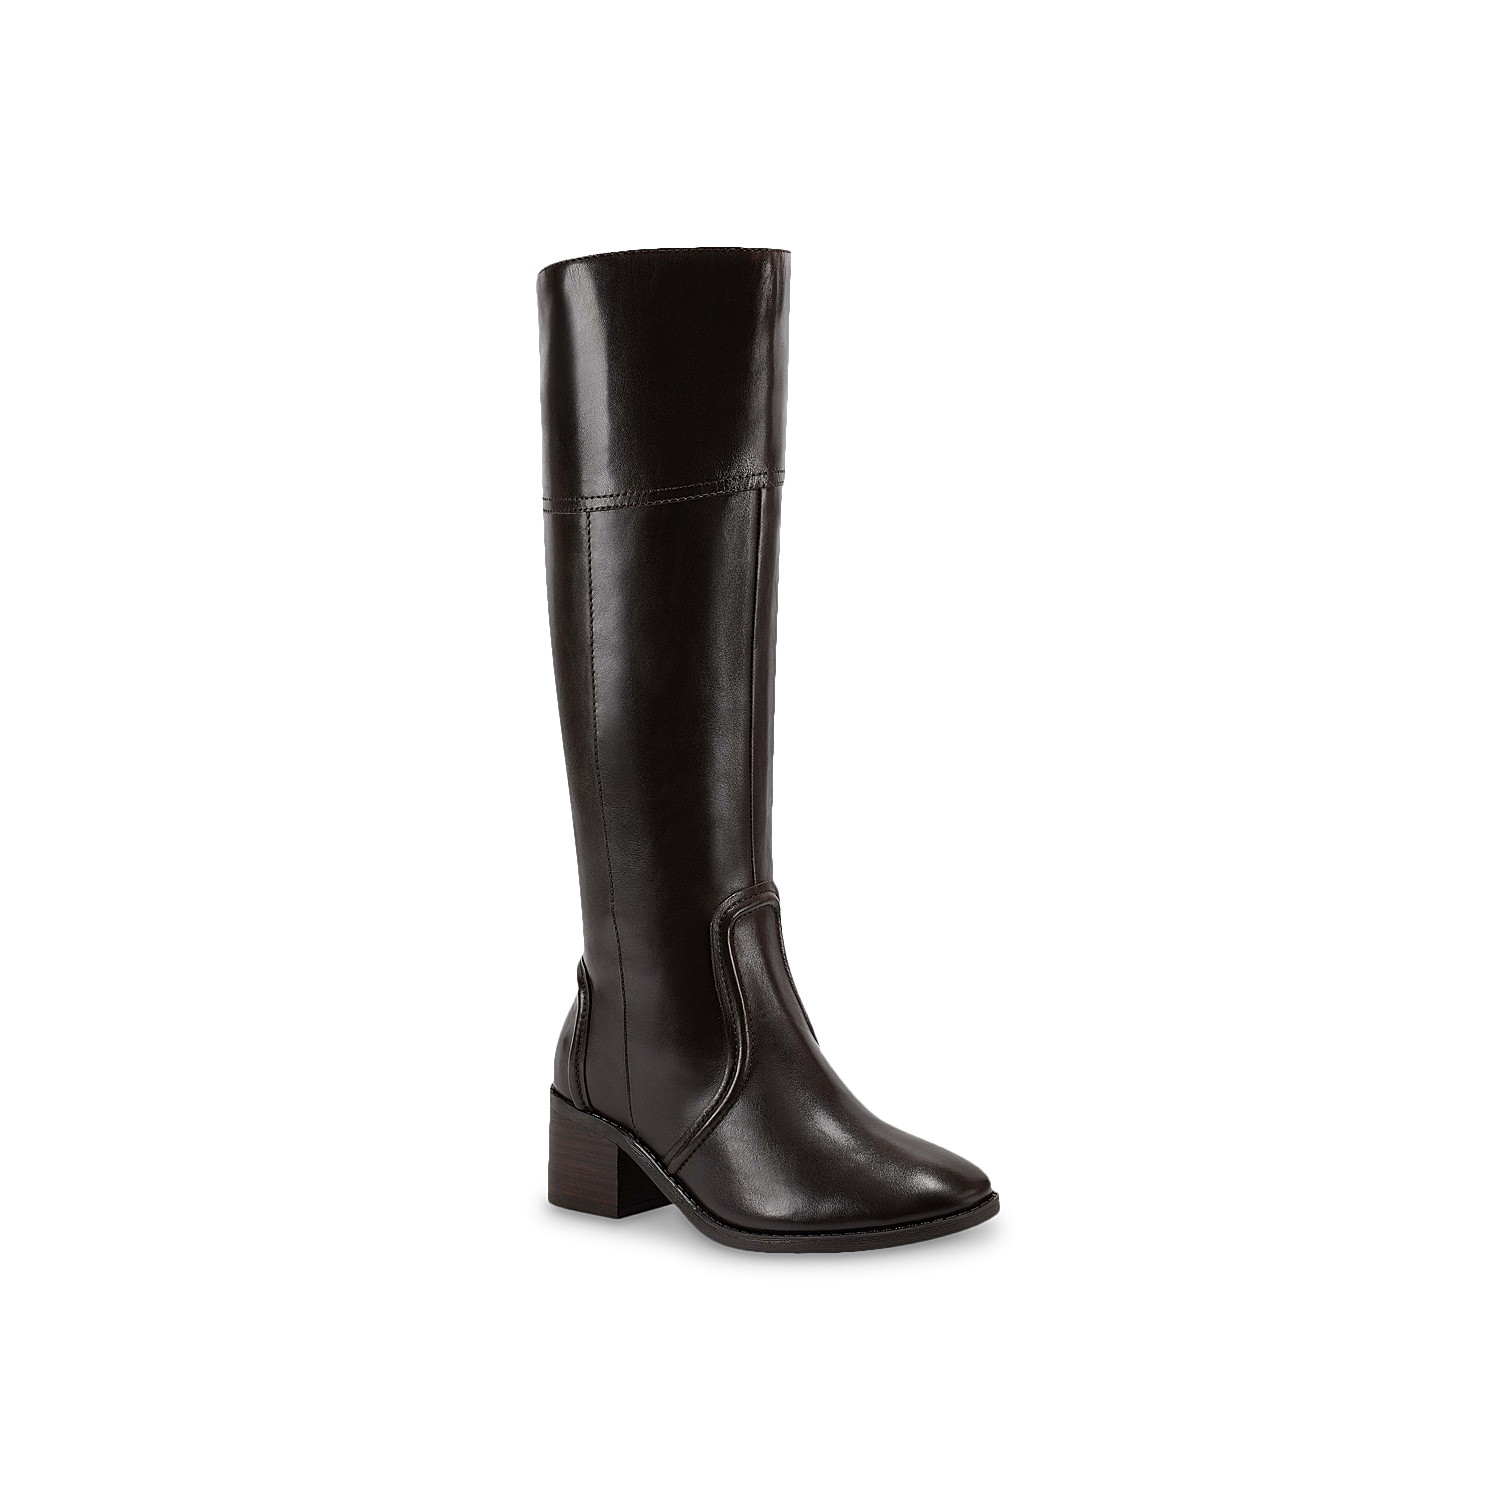 Streamline your cool weather look with the Ritly boot from Marc Fisher. A smooth leather upper rocks a riding boot inspired design for added modern styling.Click here for Boot Measuring Guide.